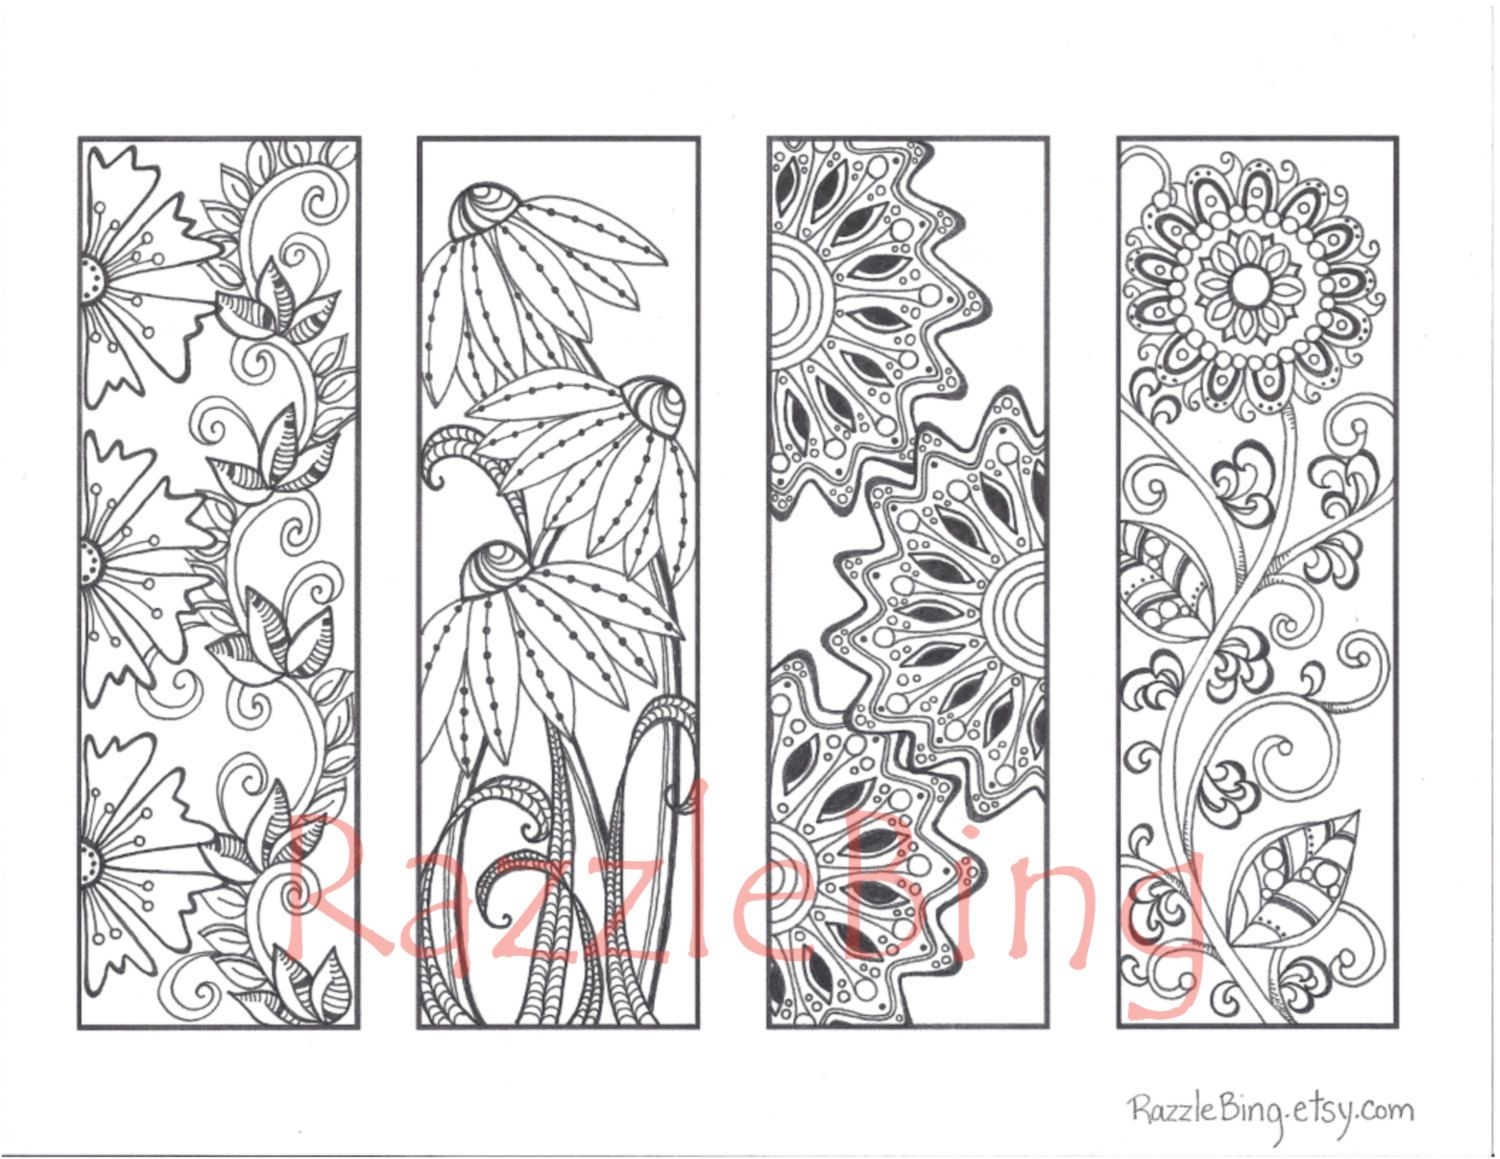 valentine bookmarks to color : Diy Bookmark Printable Coloring Page Zentangle Inspired Spring Flowers Zendoodle Doodle Pdf Instant Download